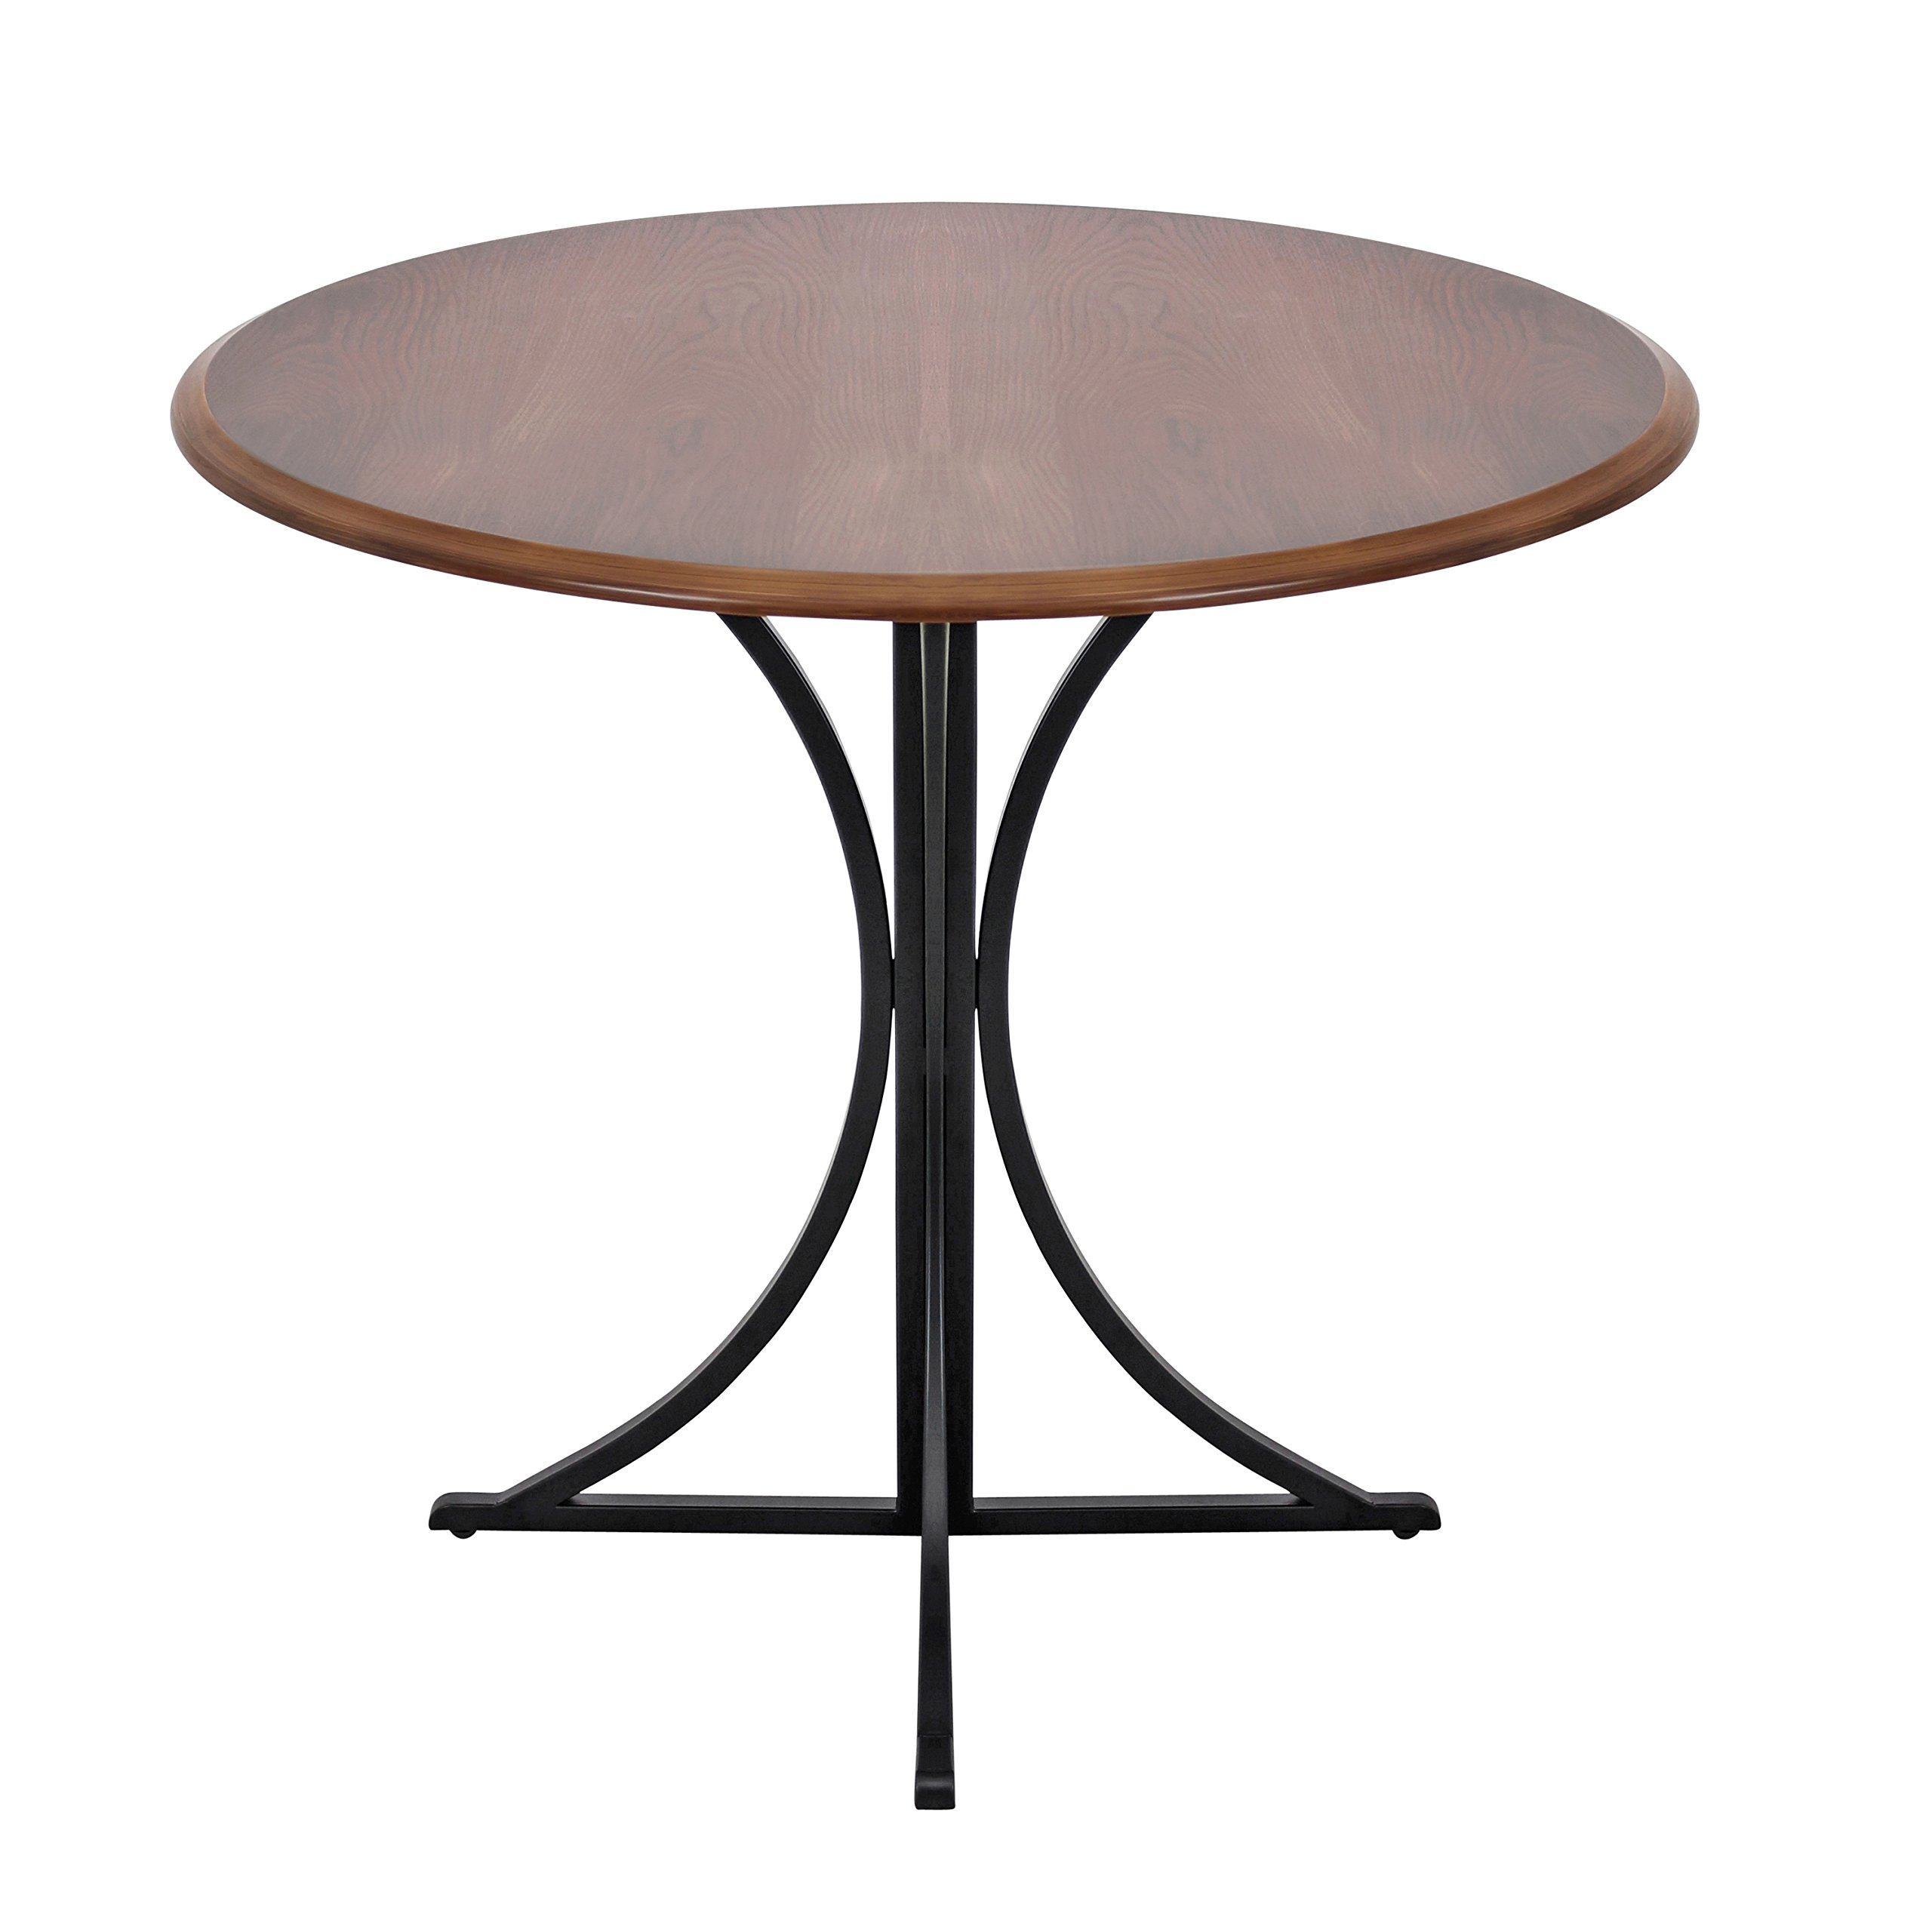 WOYBR DT WL+BK Wood, Metal Boro Dining Table by WOYBR (Image #2)